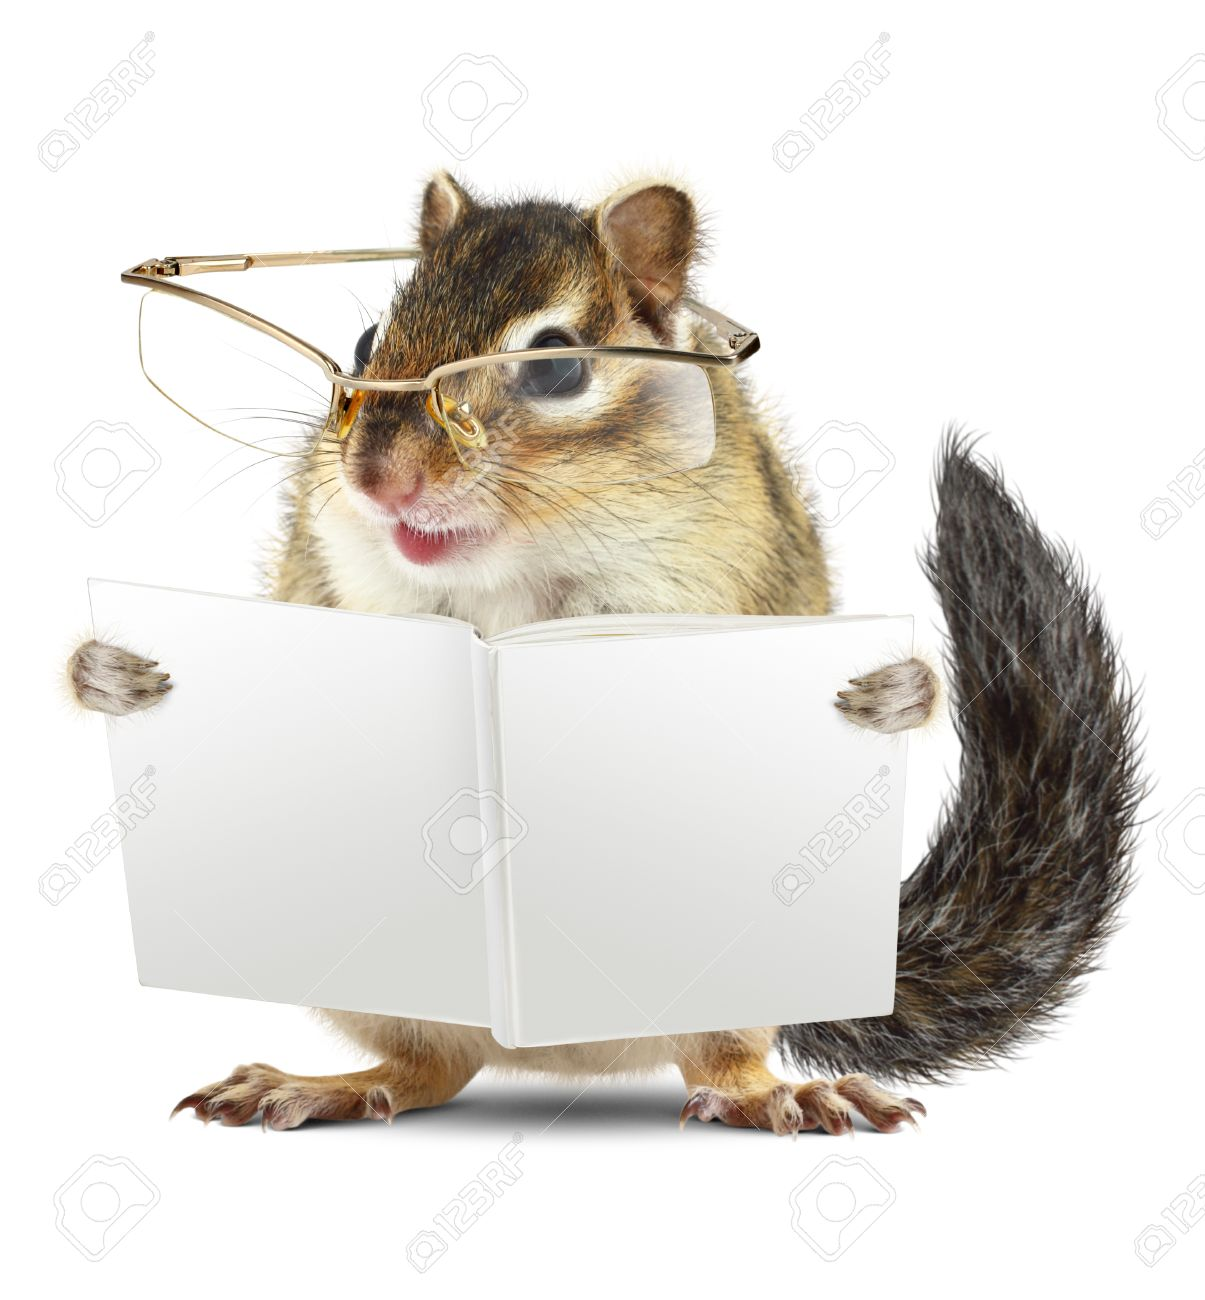 Funny animal chipmunk with glasses reading book jn white background - 47423434